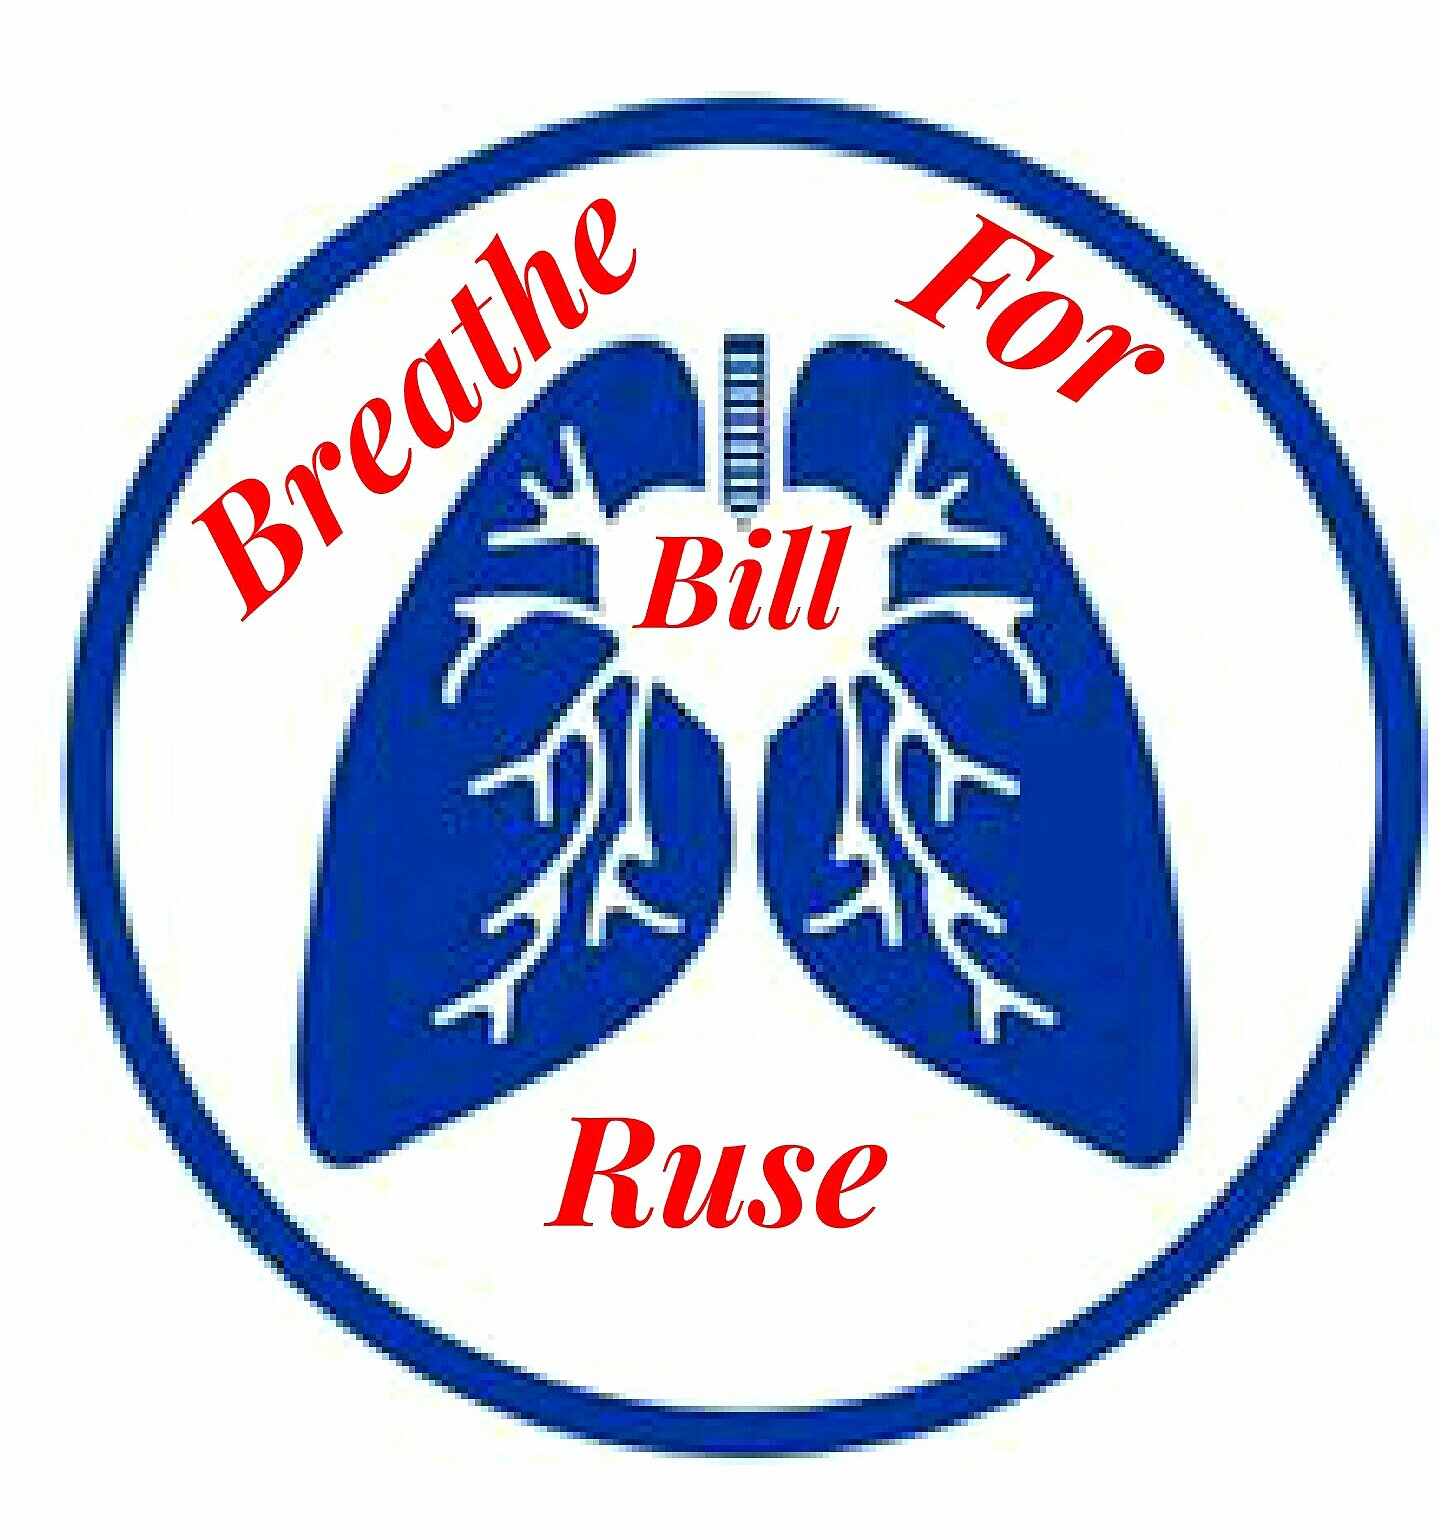 Breathe For Ruse